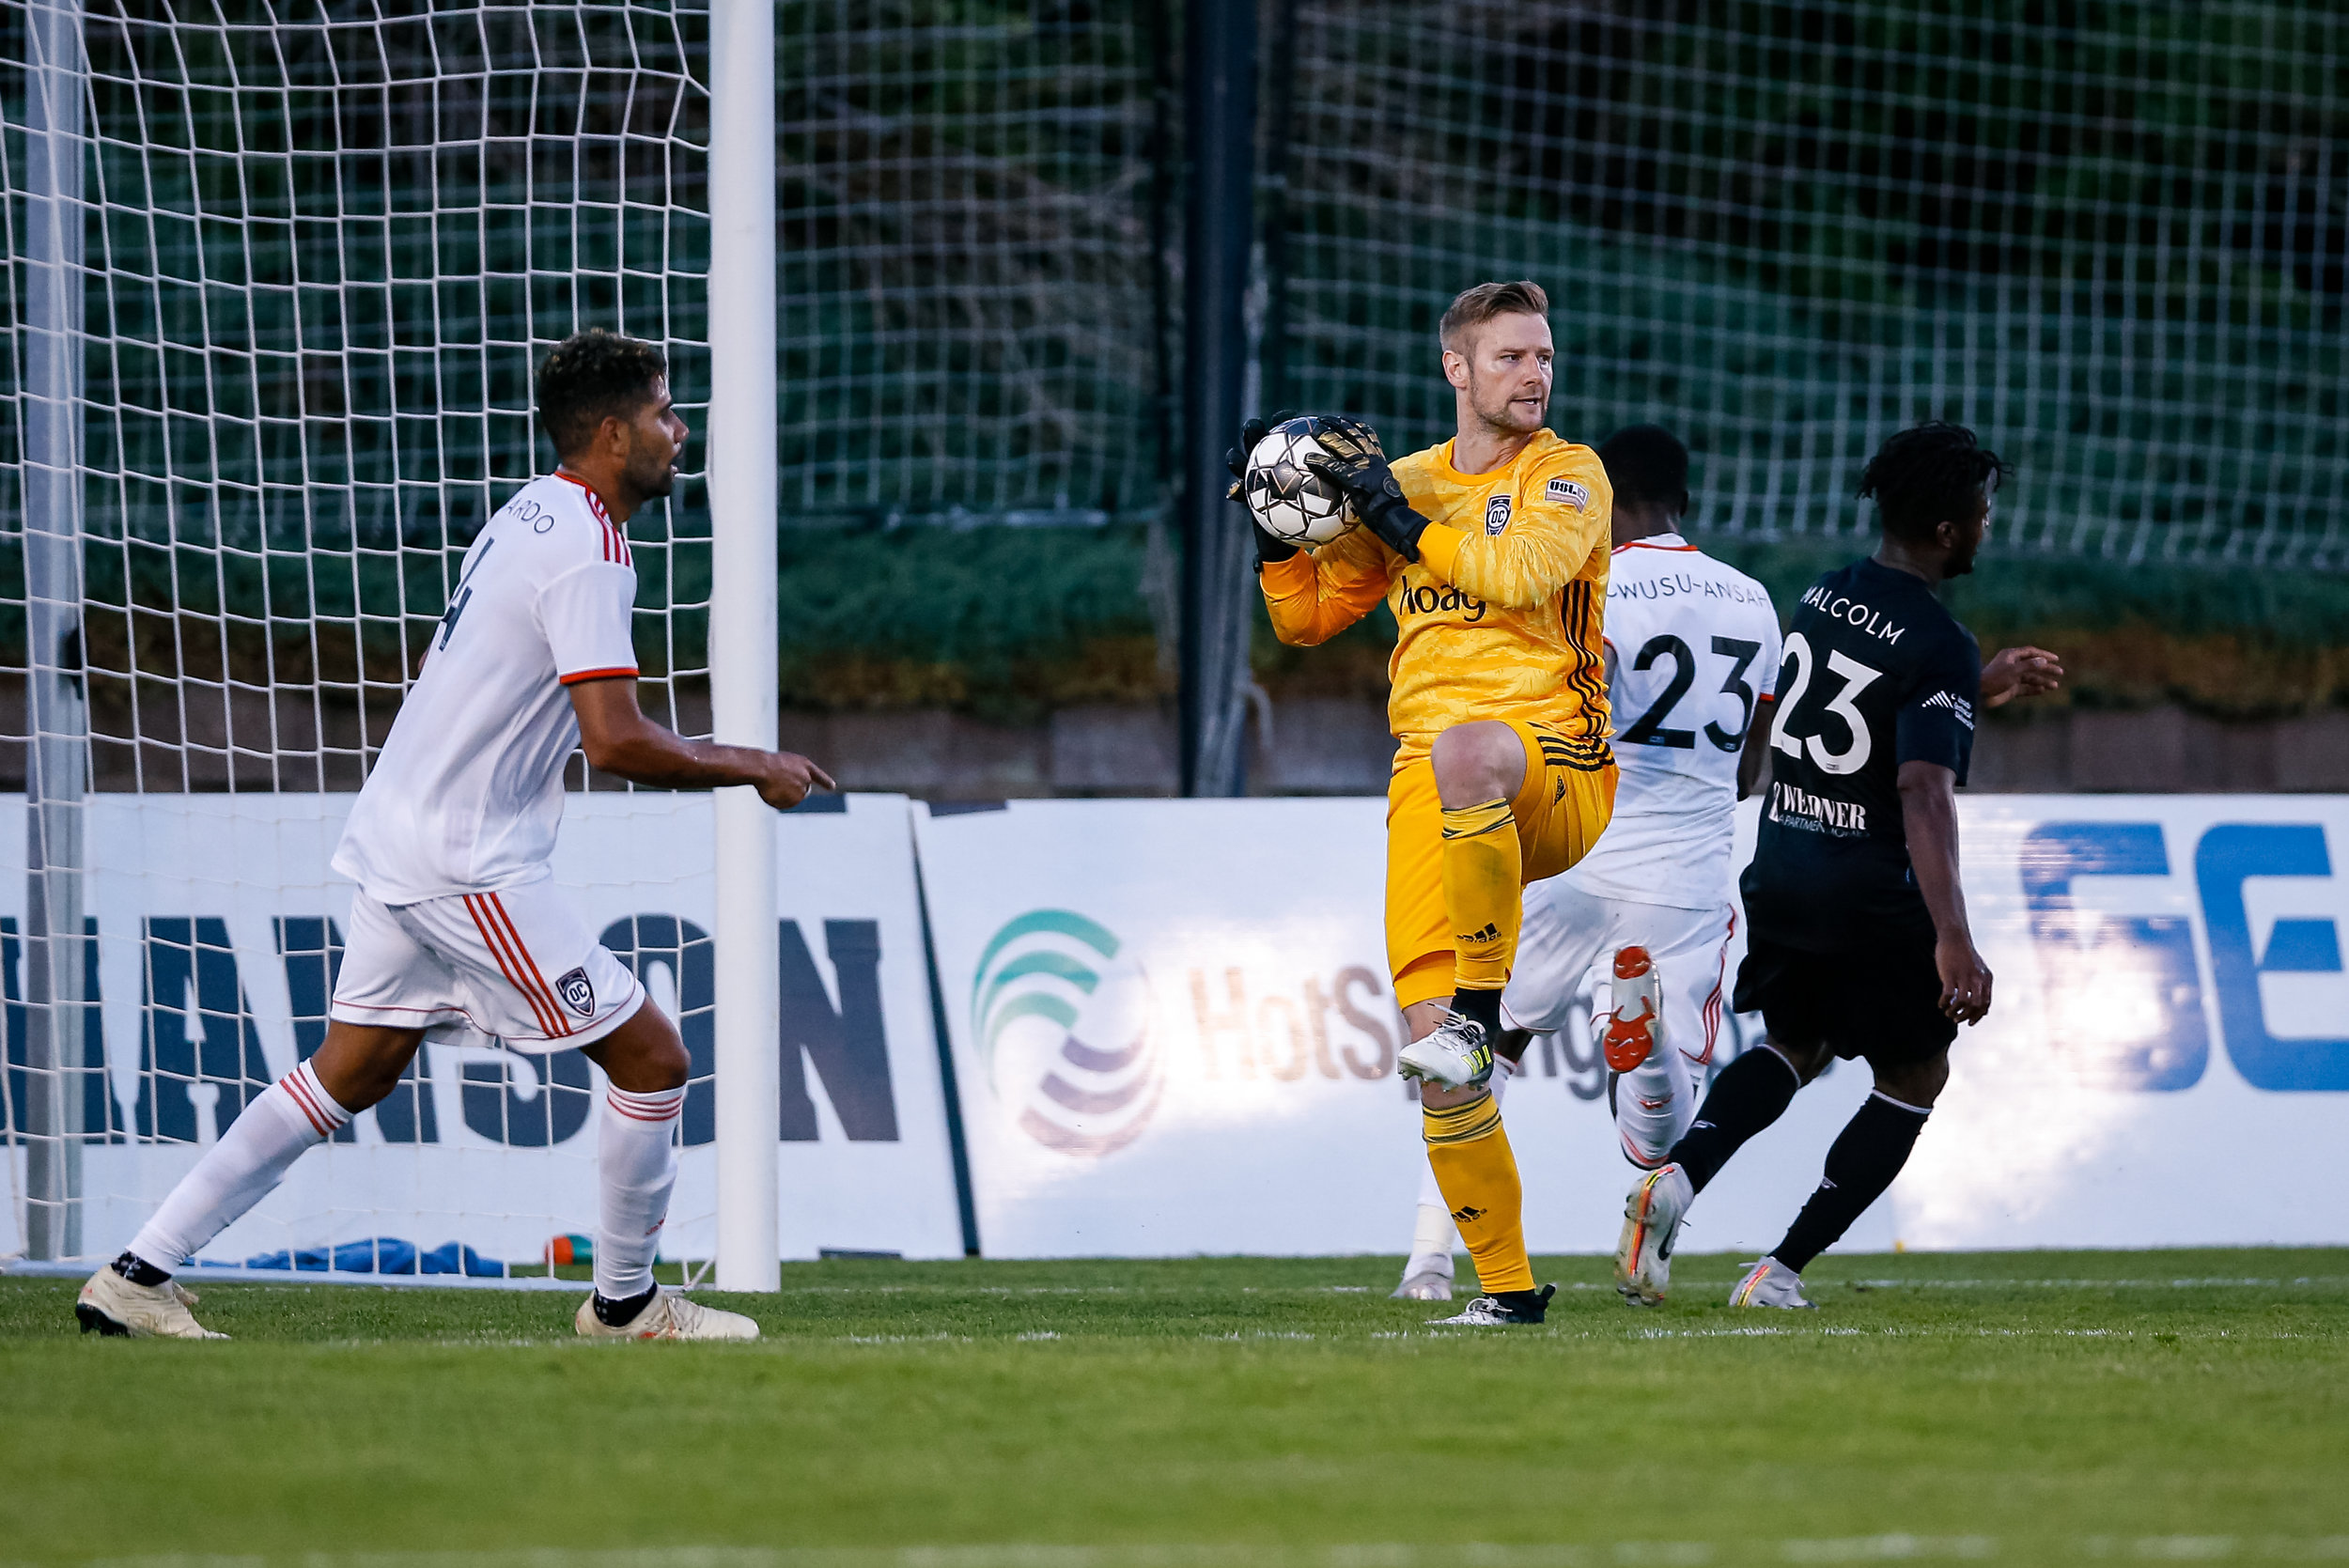 Patrick McLain protects the ball after making one of his 3 saves against Colorado Springs Switchbacks FC. |  Photo courtesy of Isaiah J. Downing